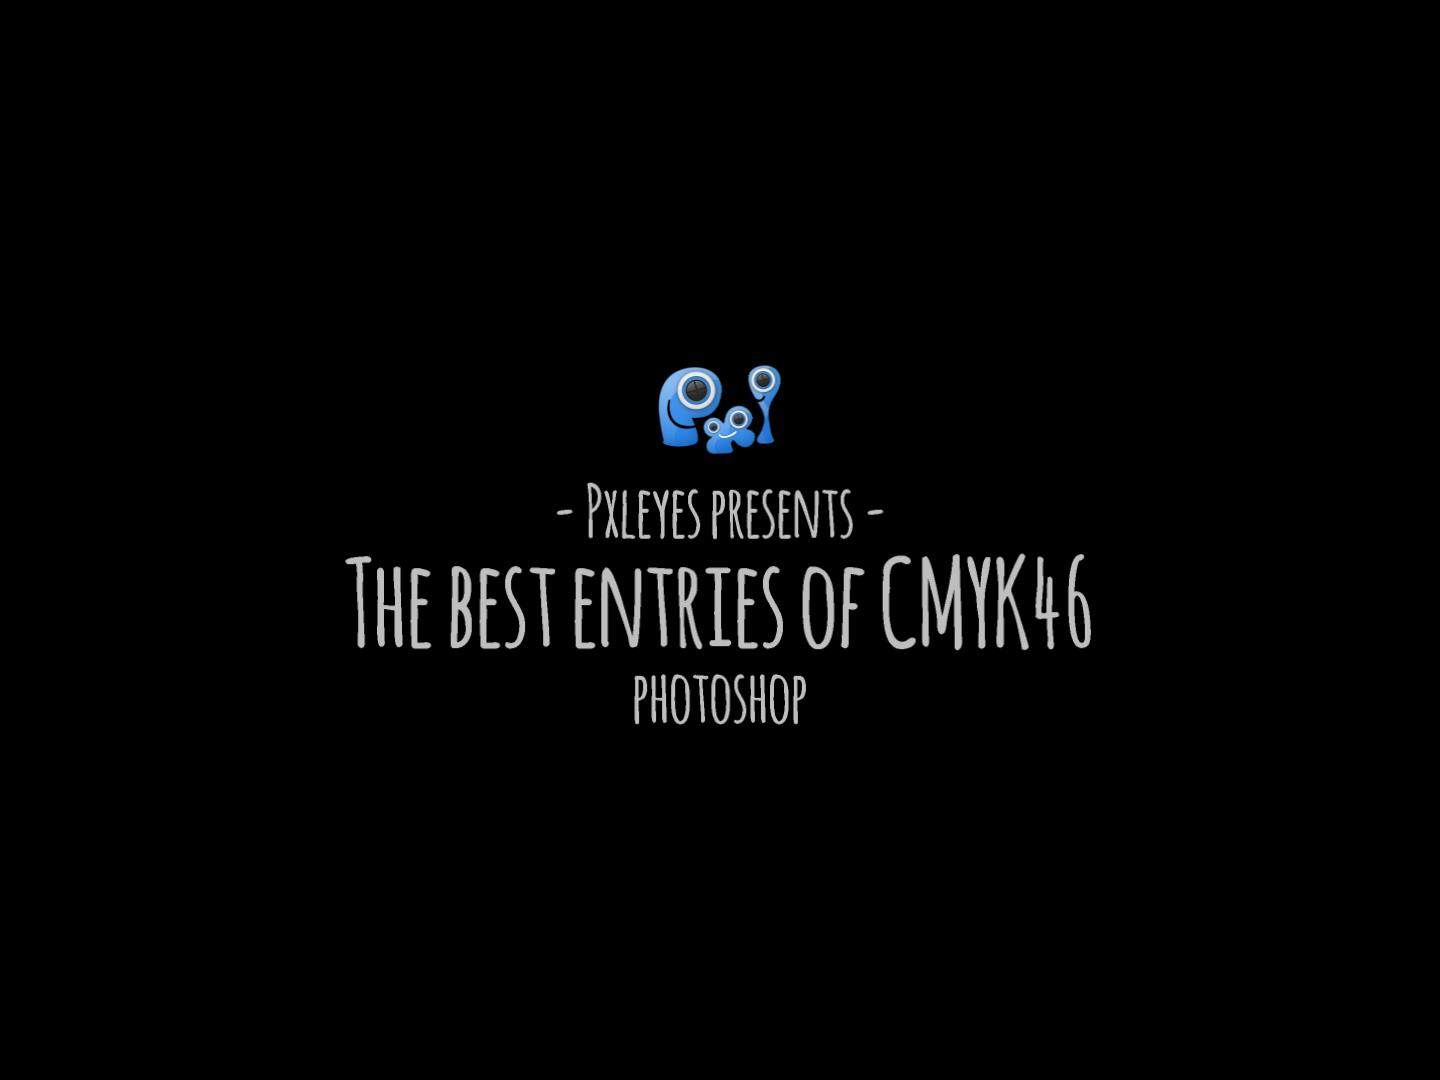 The best entries by CMYK46